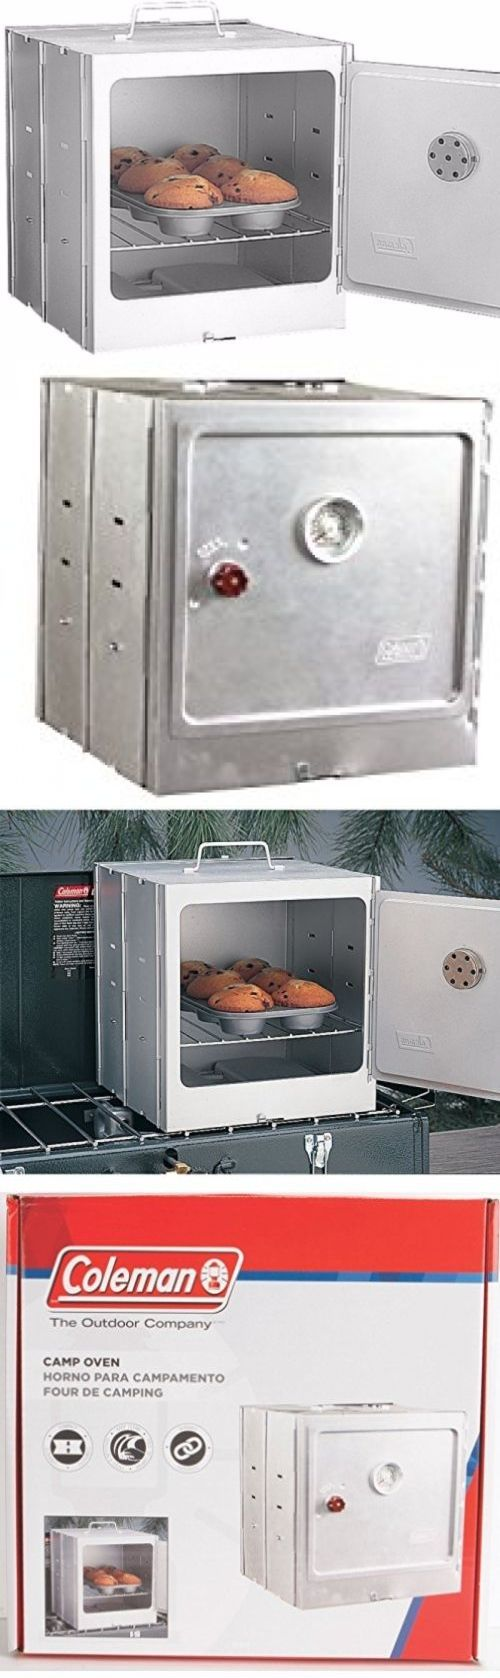 Camping Ovens 181387: Camping Equipment And Supplies Coleman Camp Oven Outdoor Cooking Tailgating BUY IT NOW ONLY: $42.99